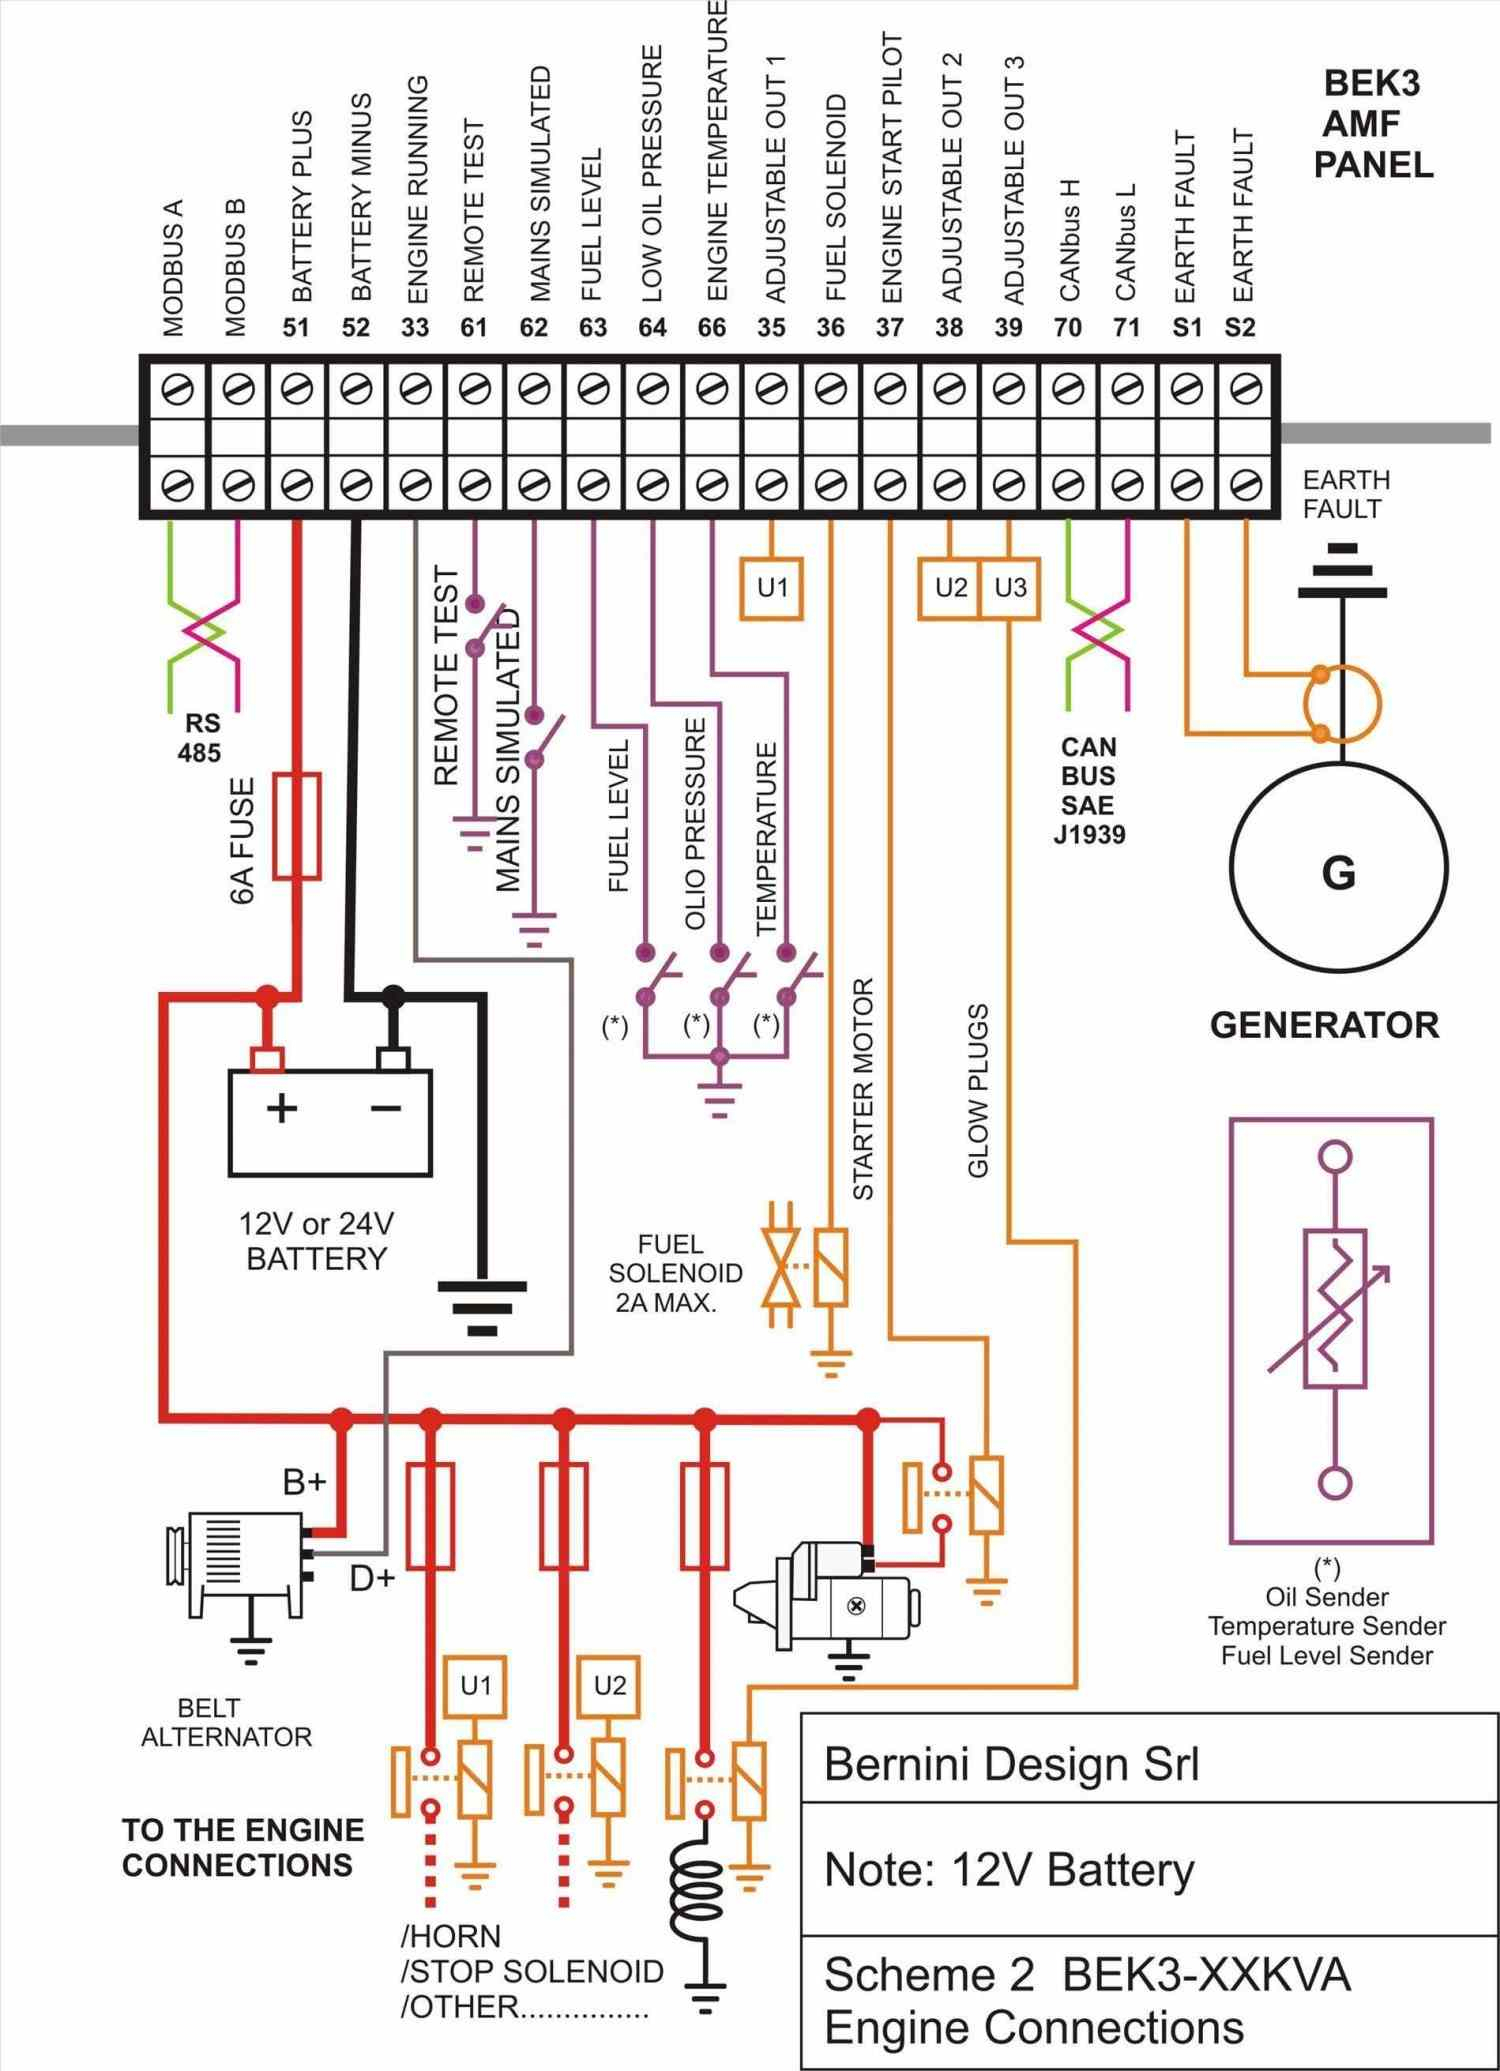 Thermostat Wires On Furnace Control Diagram   Manual E-Books - Gas Furnace Thermostat Wiring Diagram